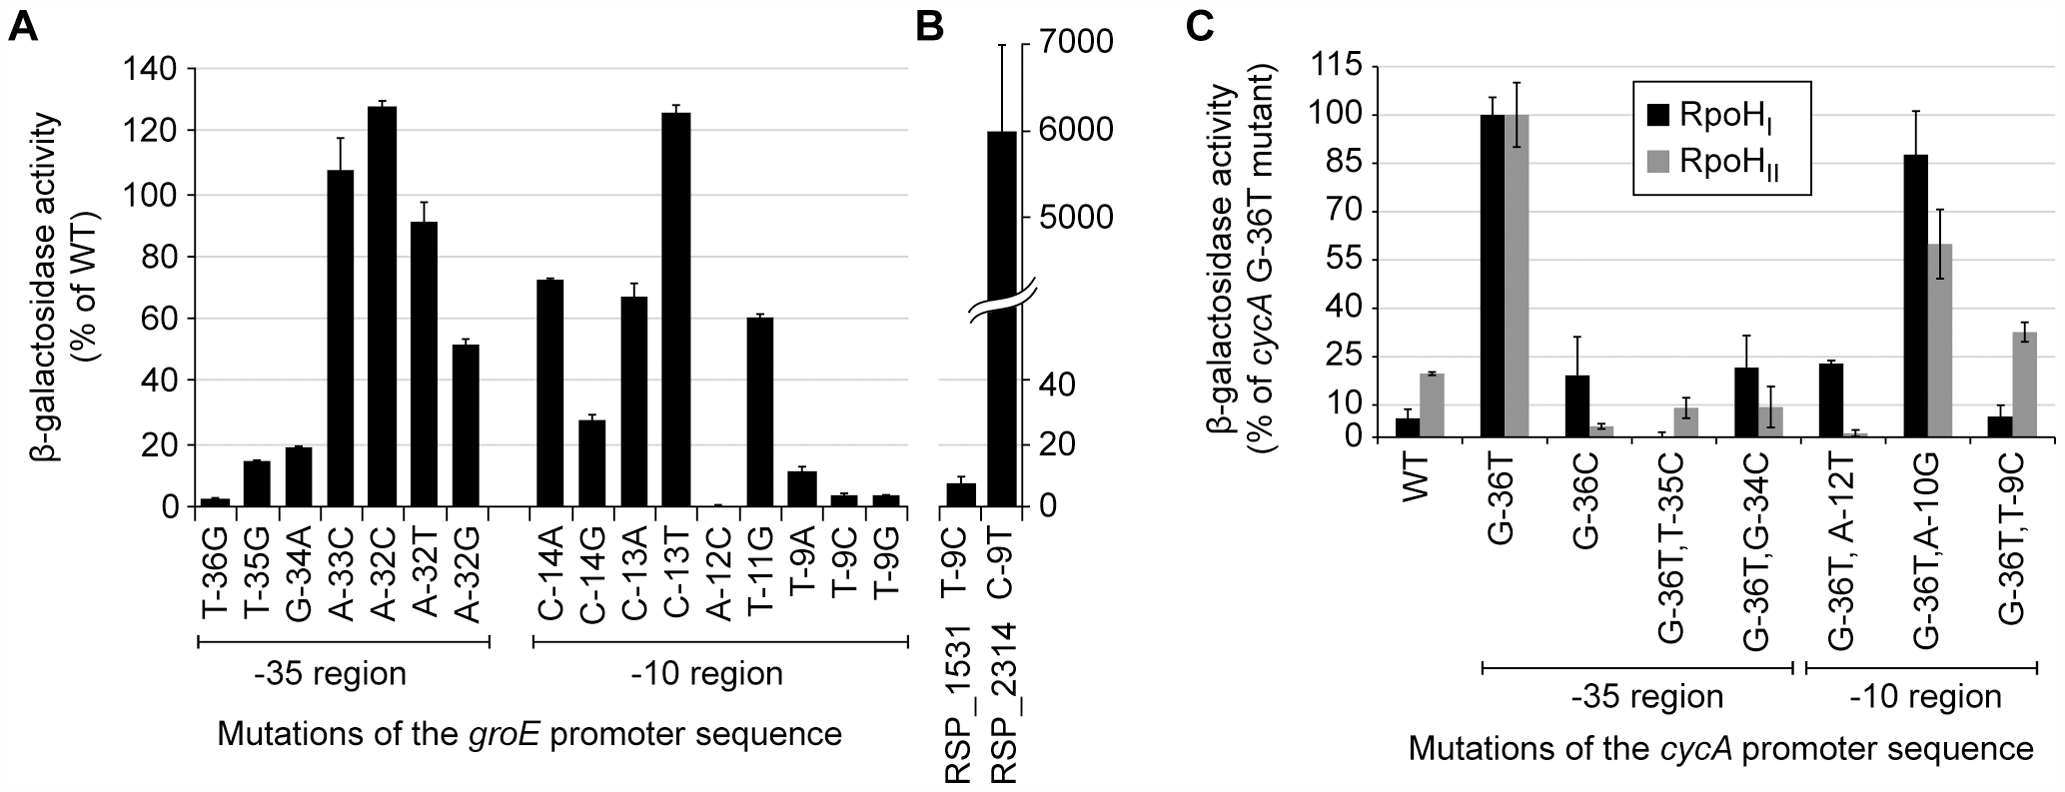 Activities of selected mutant promoters when transcribed by RpoH<sub>I</sub> or RpoH<sub>II</sub>.